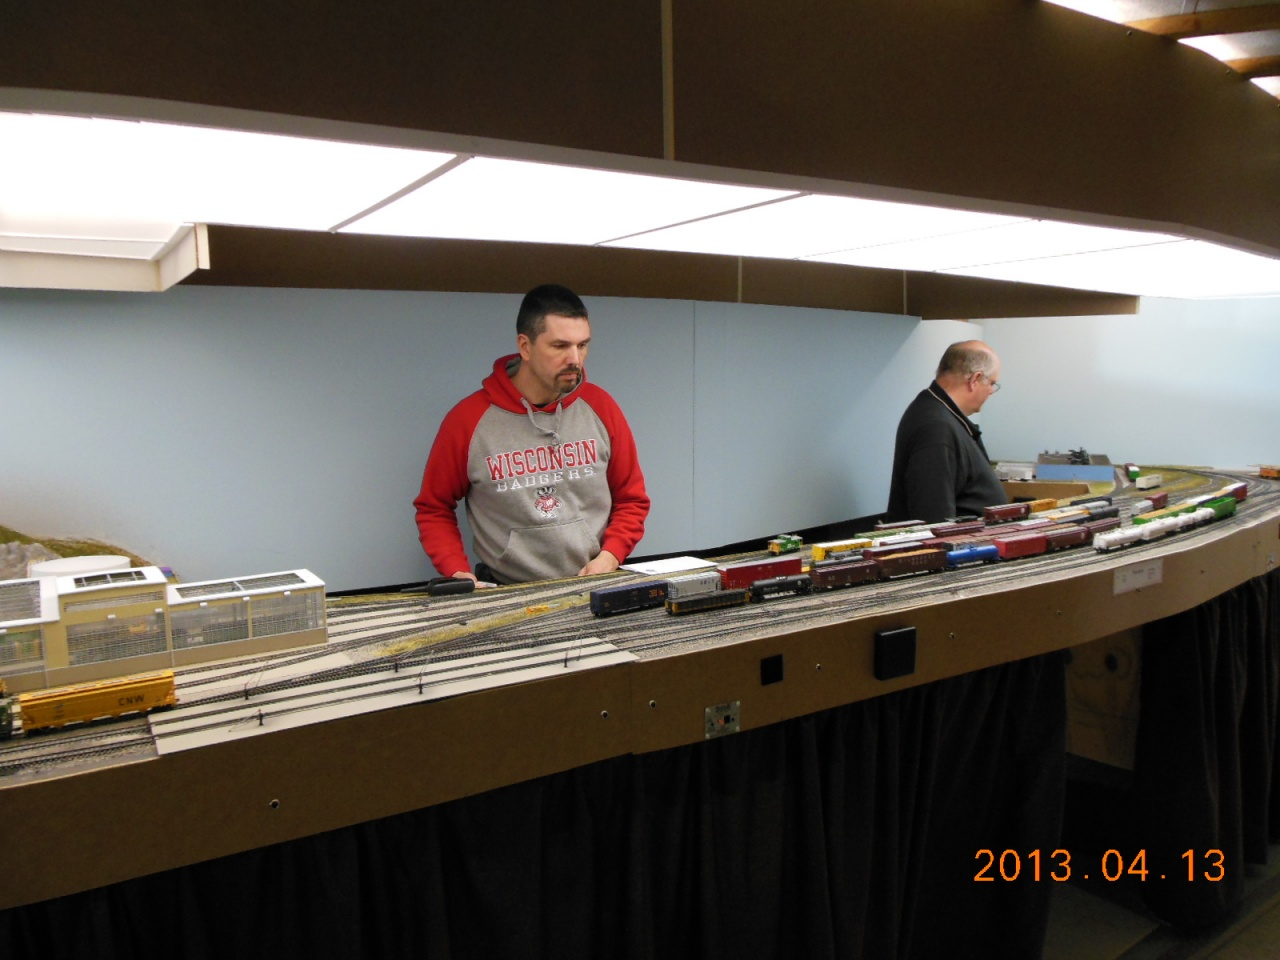 ops-session-4-13-2013-006